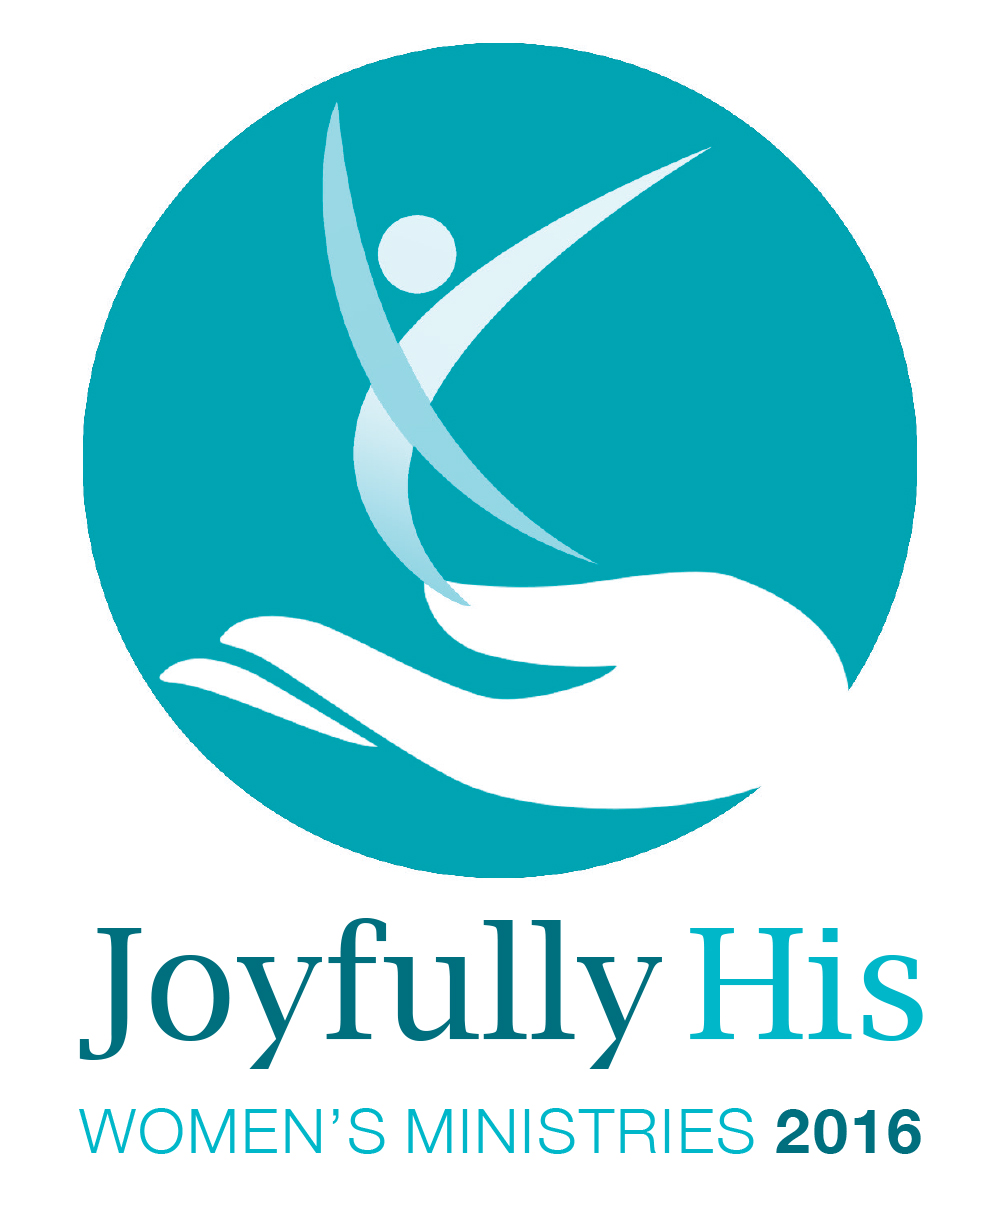 Joyfully His logo